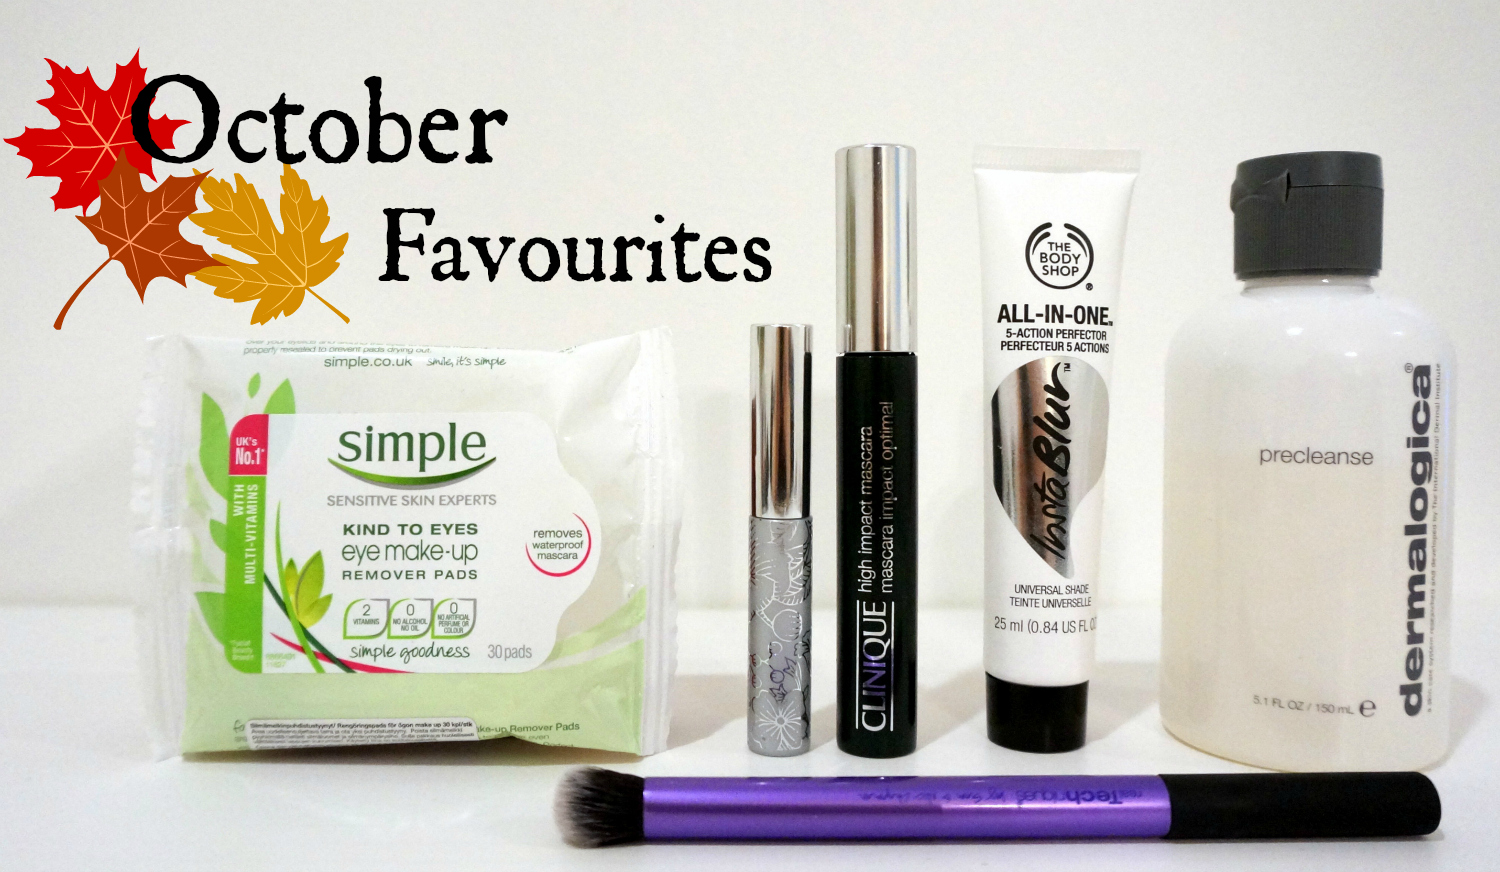 My life as Anu october beauty favourites